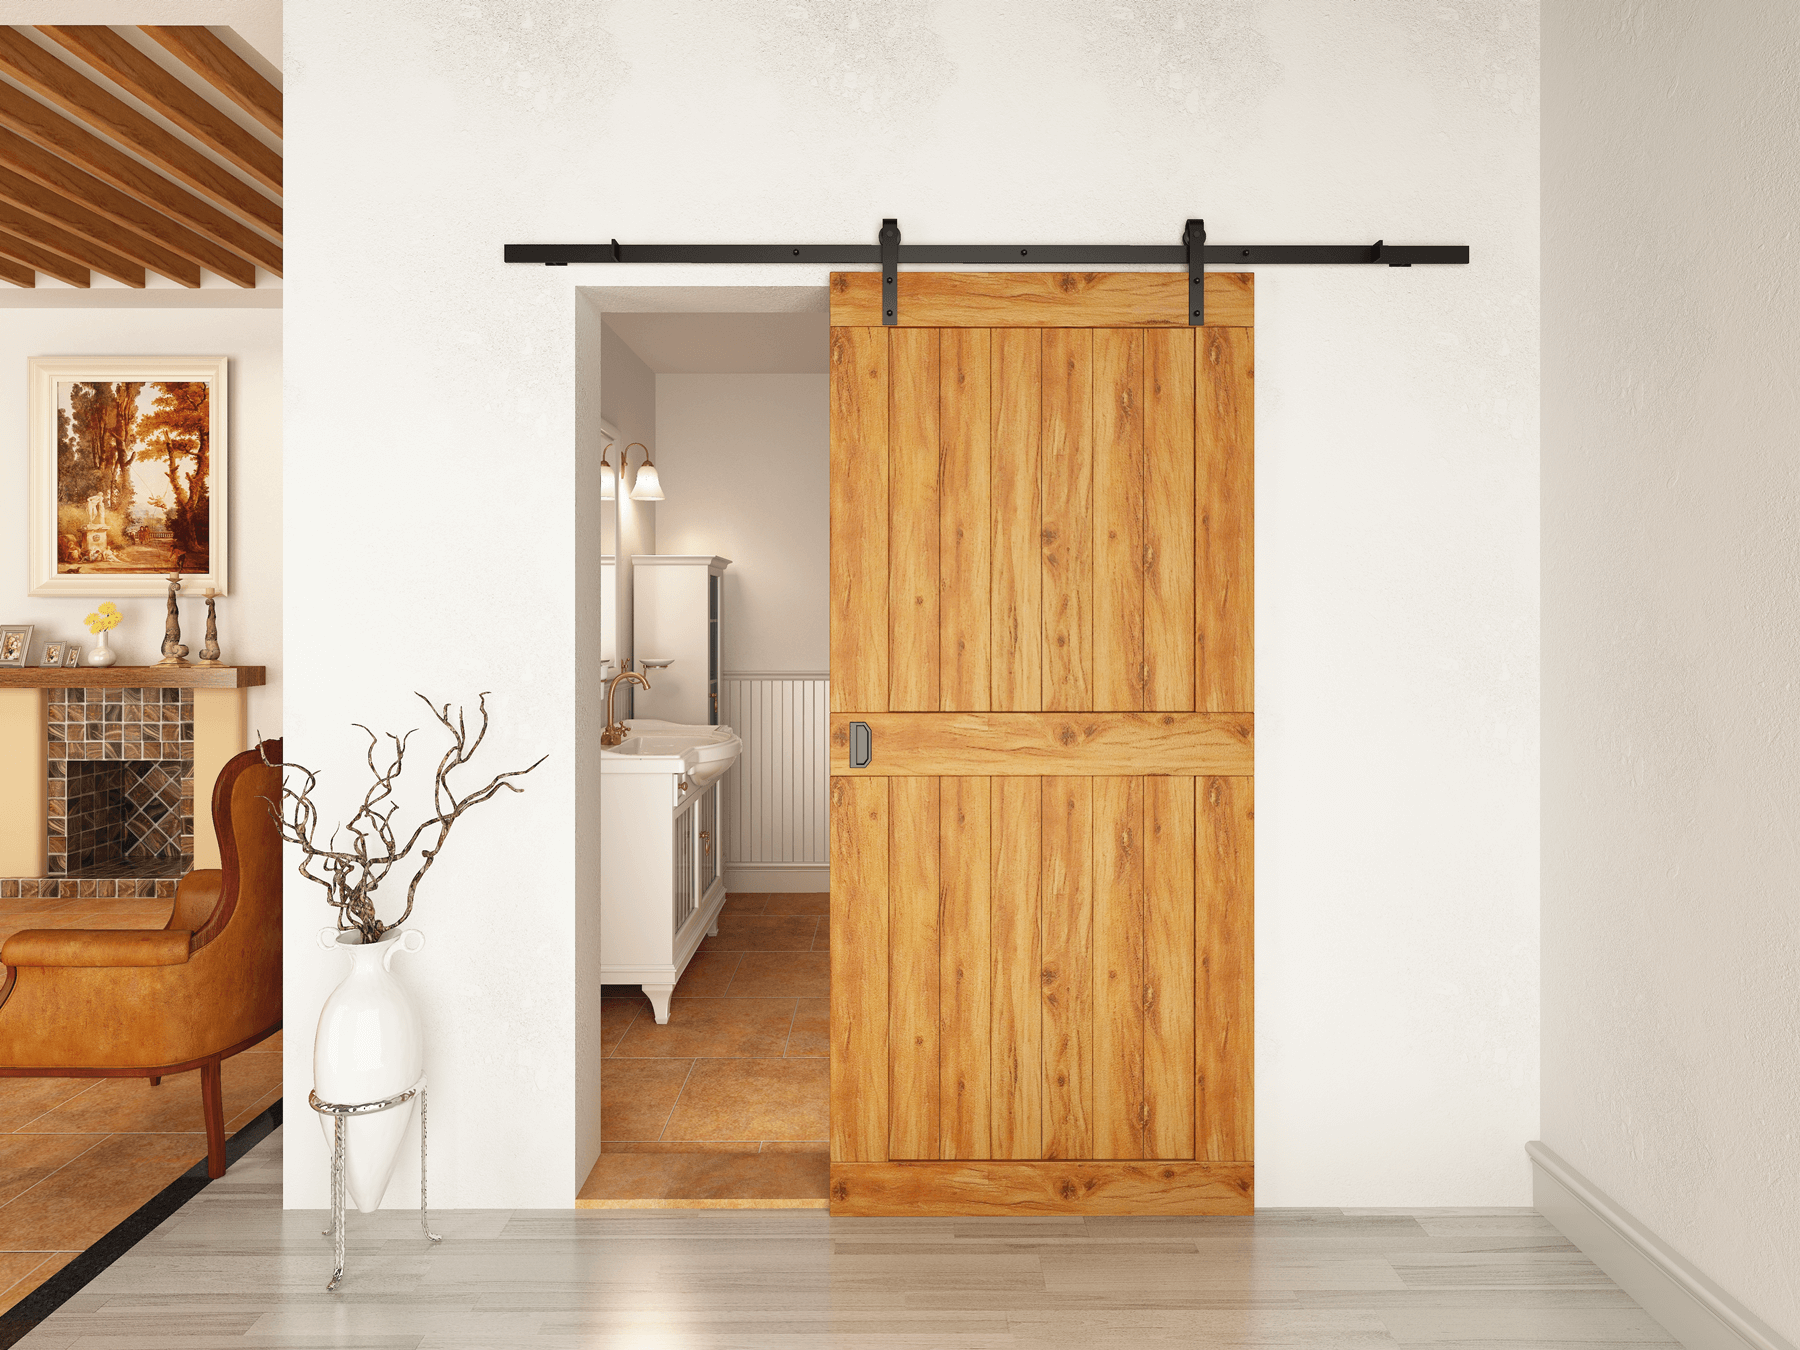 Unique sliding door hardware with beautifully crafted barn style hangers for doors weighing up to Rustic 80 sliding hardware is ideal for barn conversions